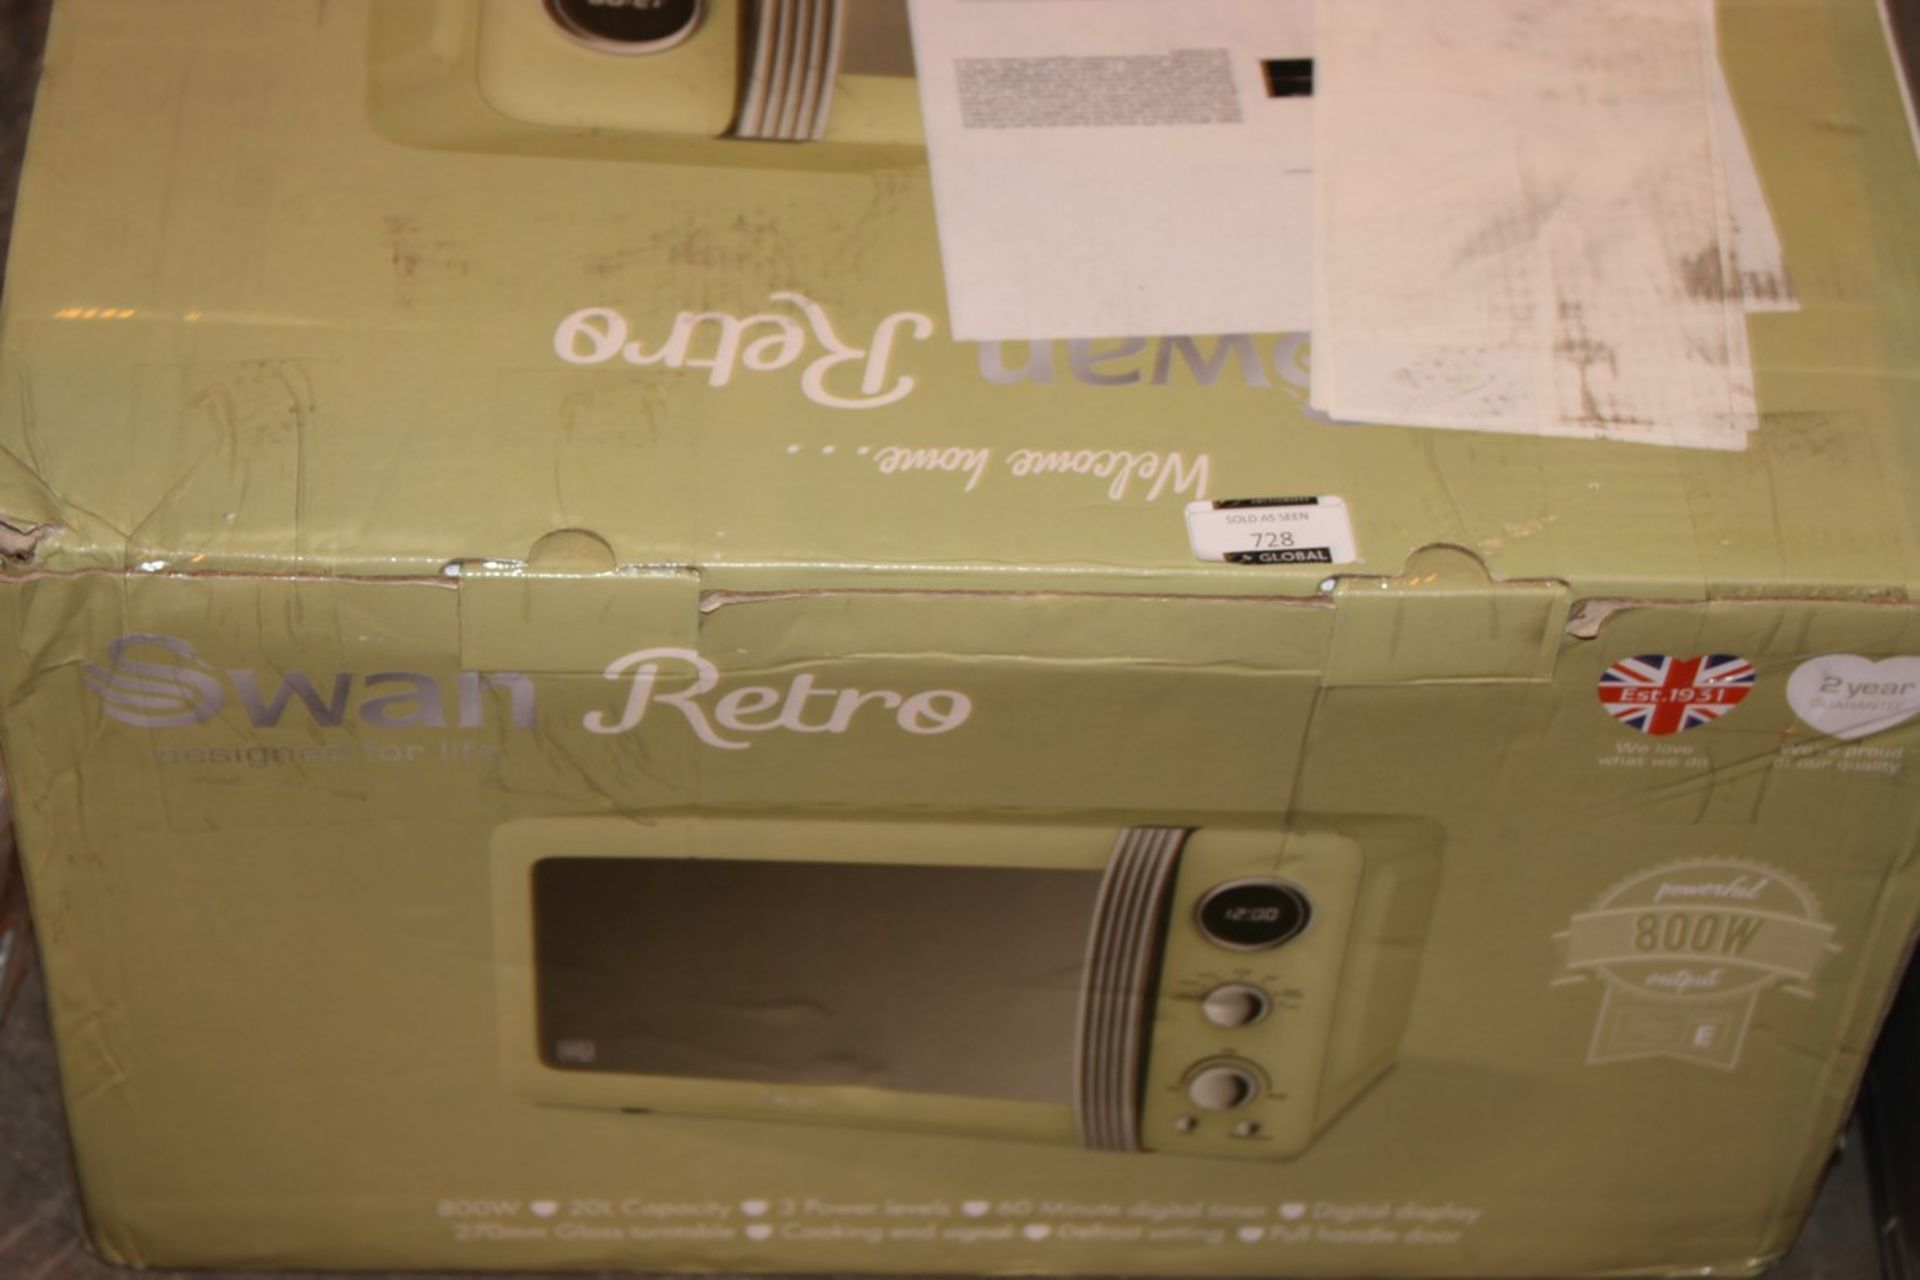 Lot 728 - Boxed Swan Retro Sage Green Counter Top Microwave RRP £80 (Pictures Are For Illustration Puposes